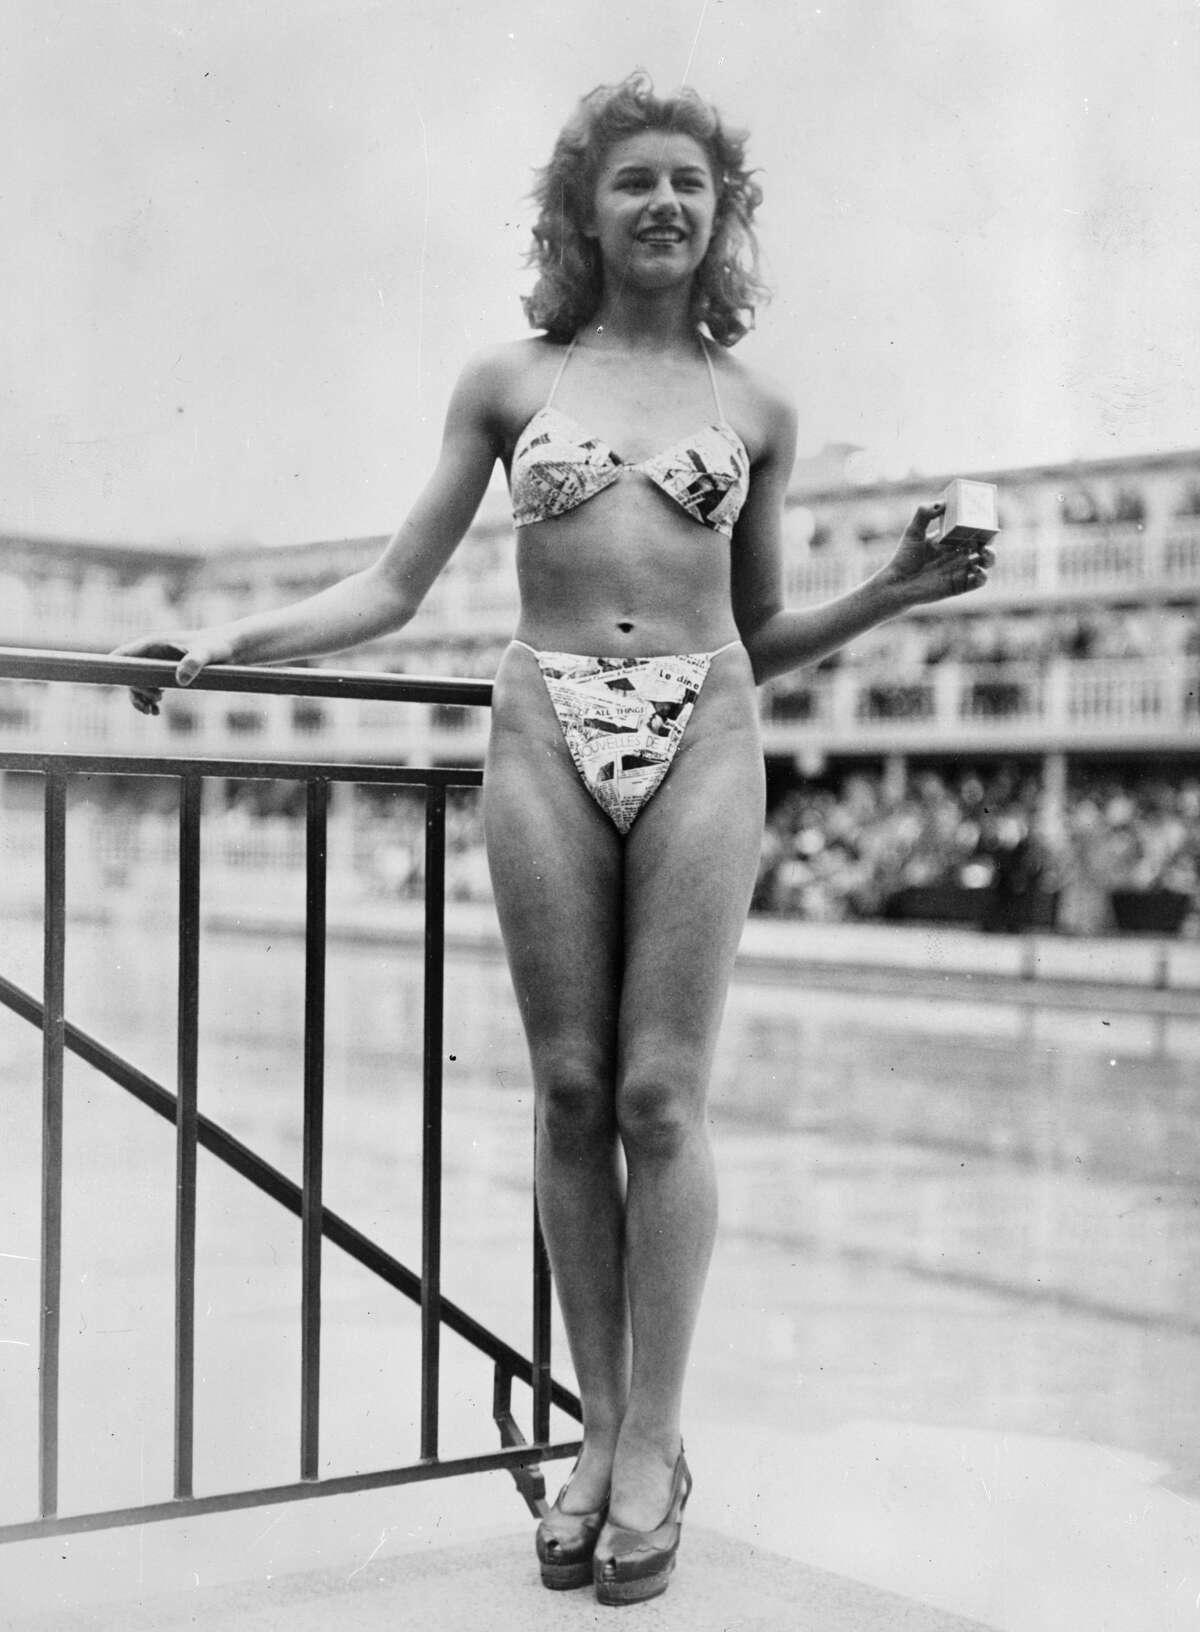 Although two-piece swimsuits (some of them revealing) had existed long before 1946, July 5 of that year is widely recognized as the birthday of the modern bikini. The new 'Bikini' swimming costume (in a newsprint-patterned fabric) caused a sensation at a beauty contest at the Molitor swimming pool in Paris. Designer Louis Reard was unable to find a 'respectable' model for his costume and the job of displaying it went to 19-year-old Micheline Bernardini, a nude dancer from the Casino de Paris. She is holding a small box into which the entire costume can be packed. Celebrated as the first bikini, Luard's design came a few months after a similar two-piece design was produced by French designer Jacques Heim. Take a look at these other swimsuit designs, from the 1920s until today.